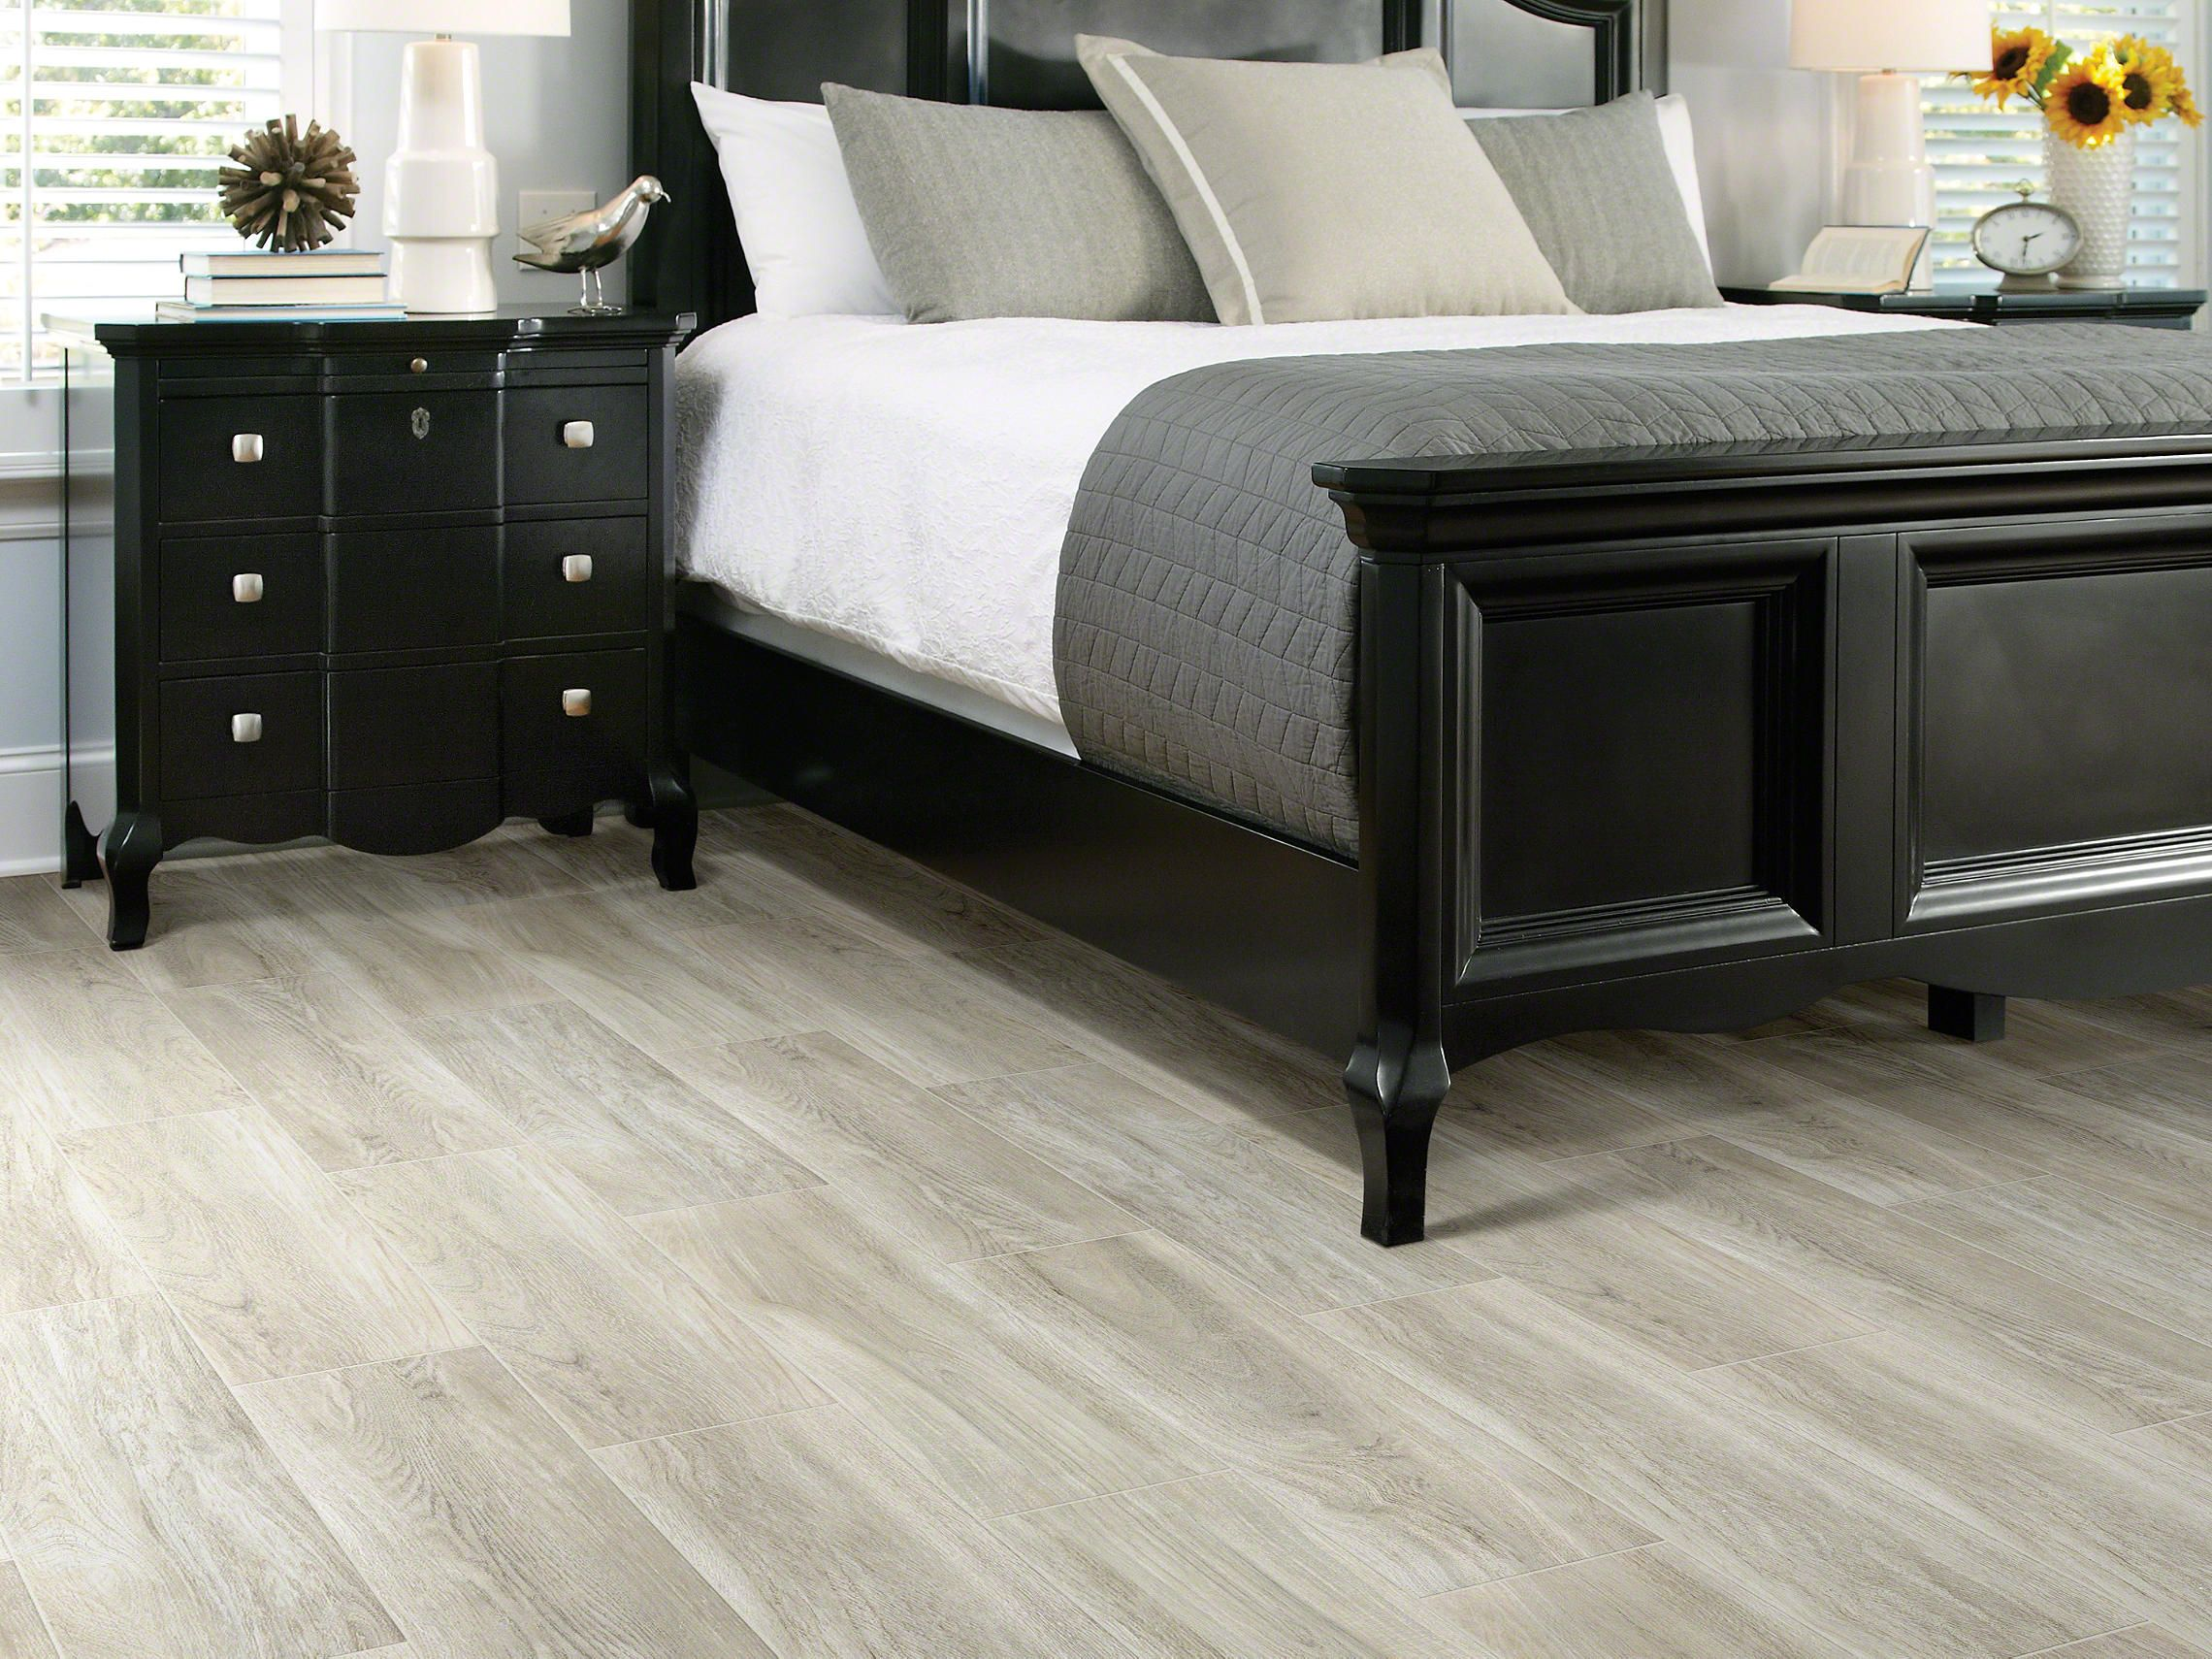 Beautiful Shaw Wood Look Tile Perfectly Calm And Soothing